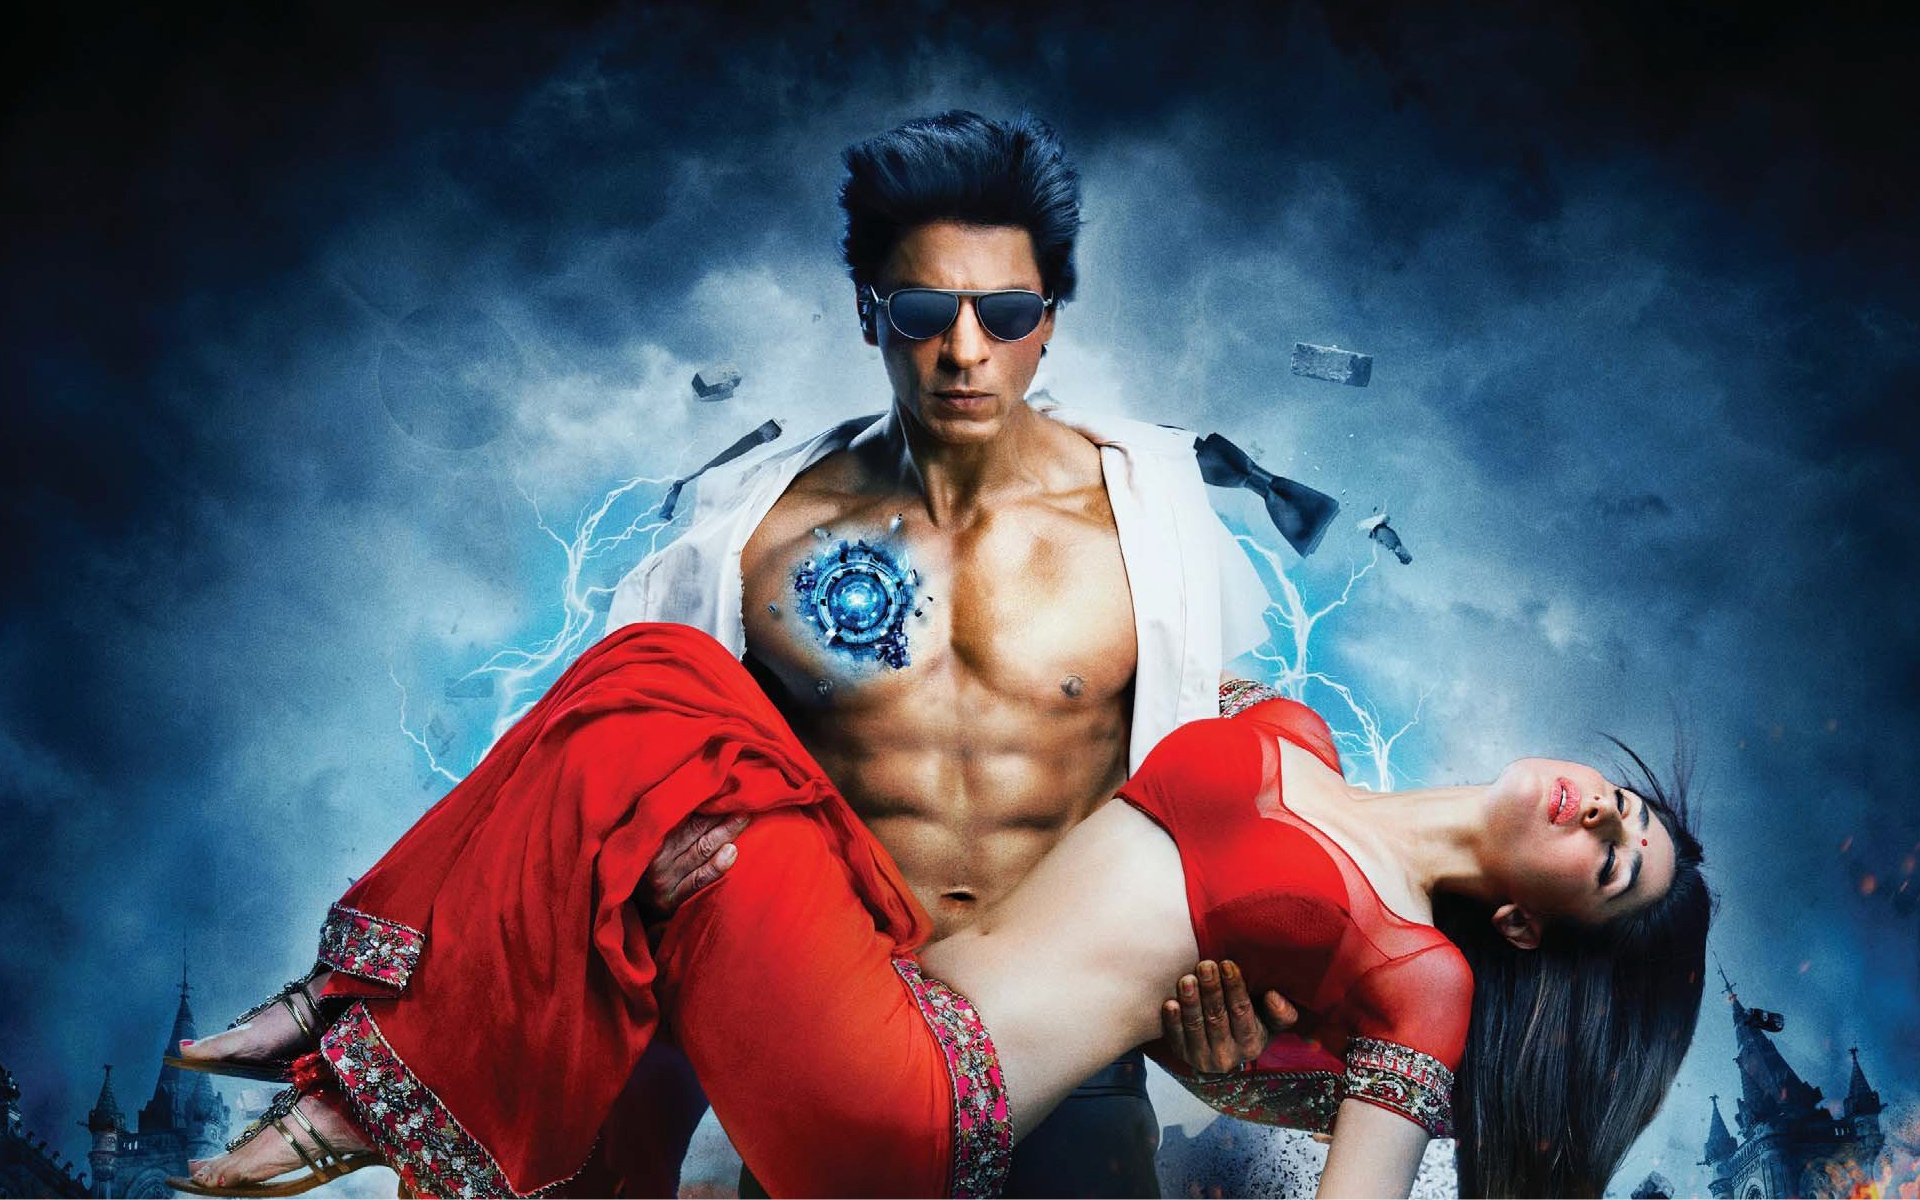 Photo Credit https://cultureatkamelia.wordpress.com/2011/11/19/ra-one-bollywood-transforms-from-lovers-to-superheros/